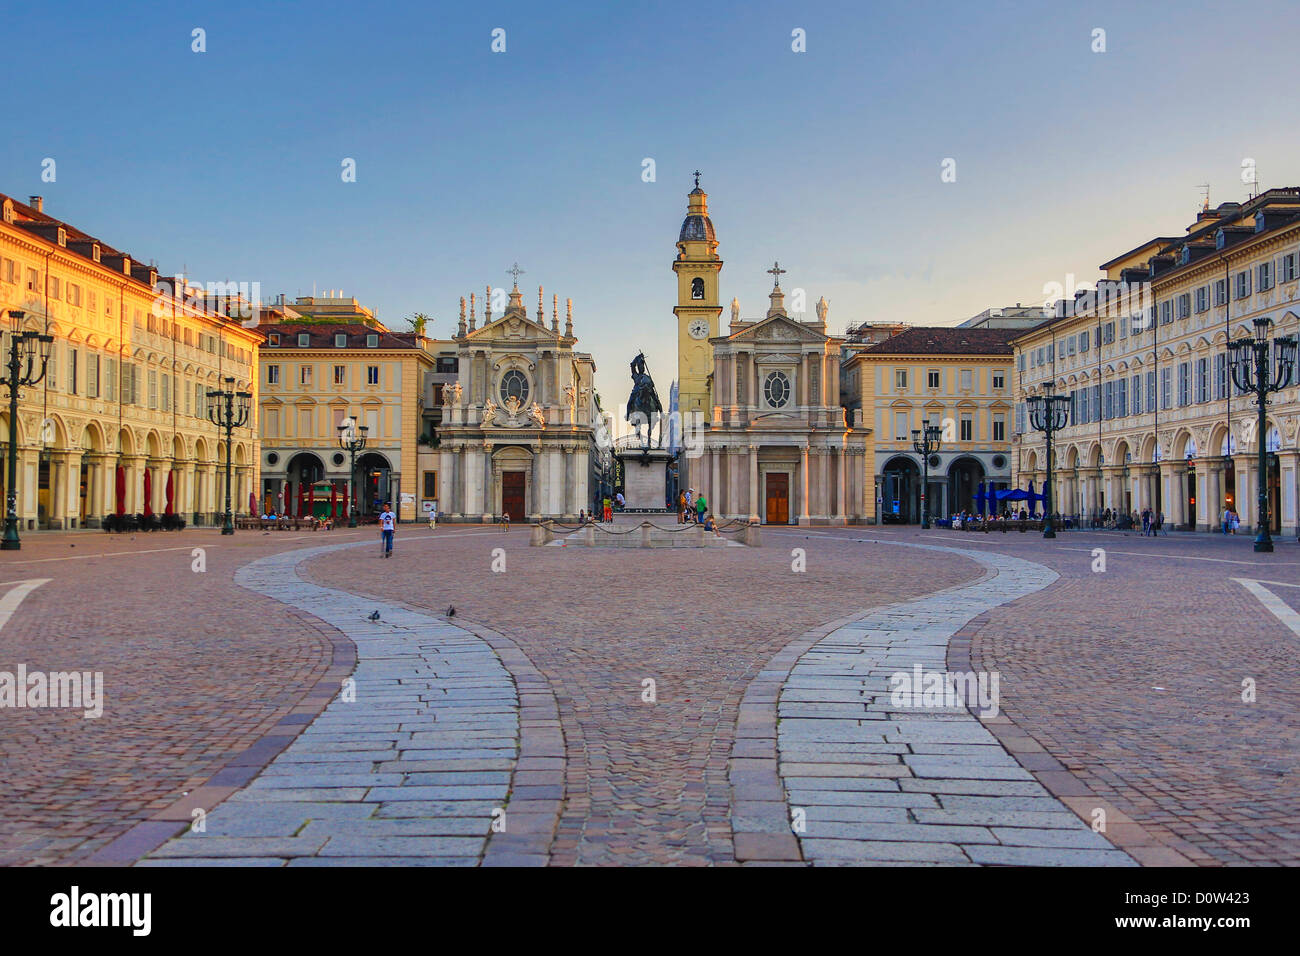 Italy, Europe, travel, Torino, Turin, City, San Carlo, Square, architecture, church, colourful, downtown, evening, - Stock Image